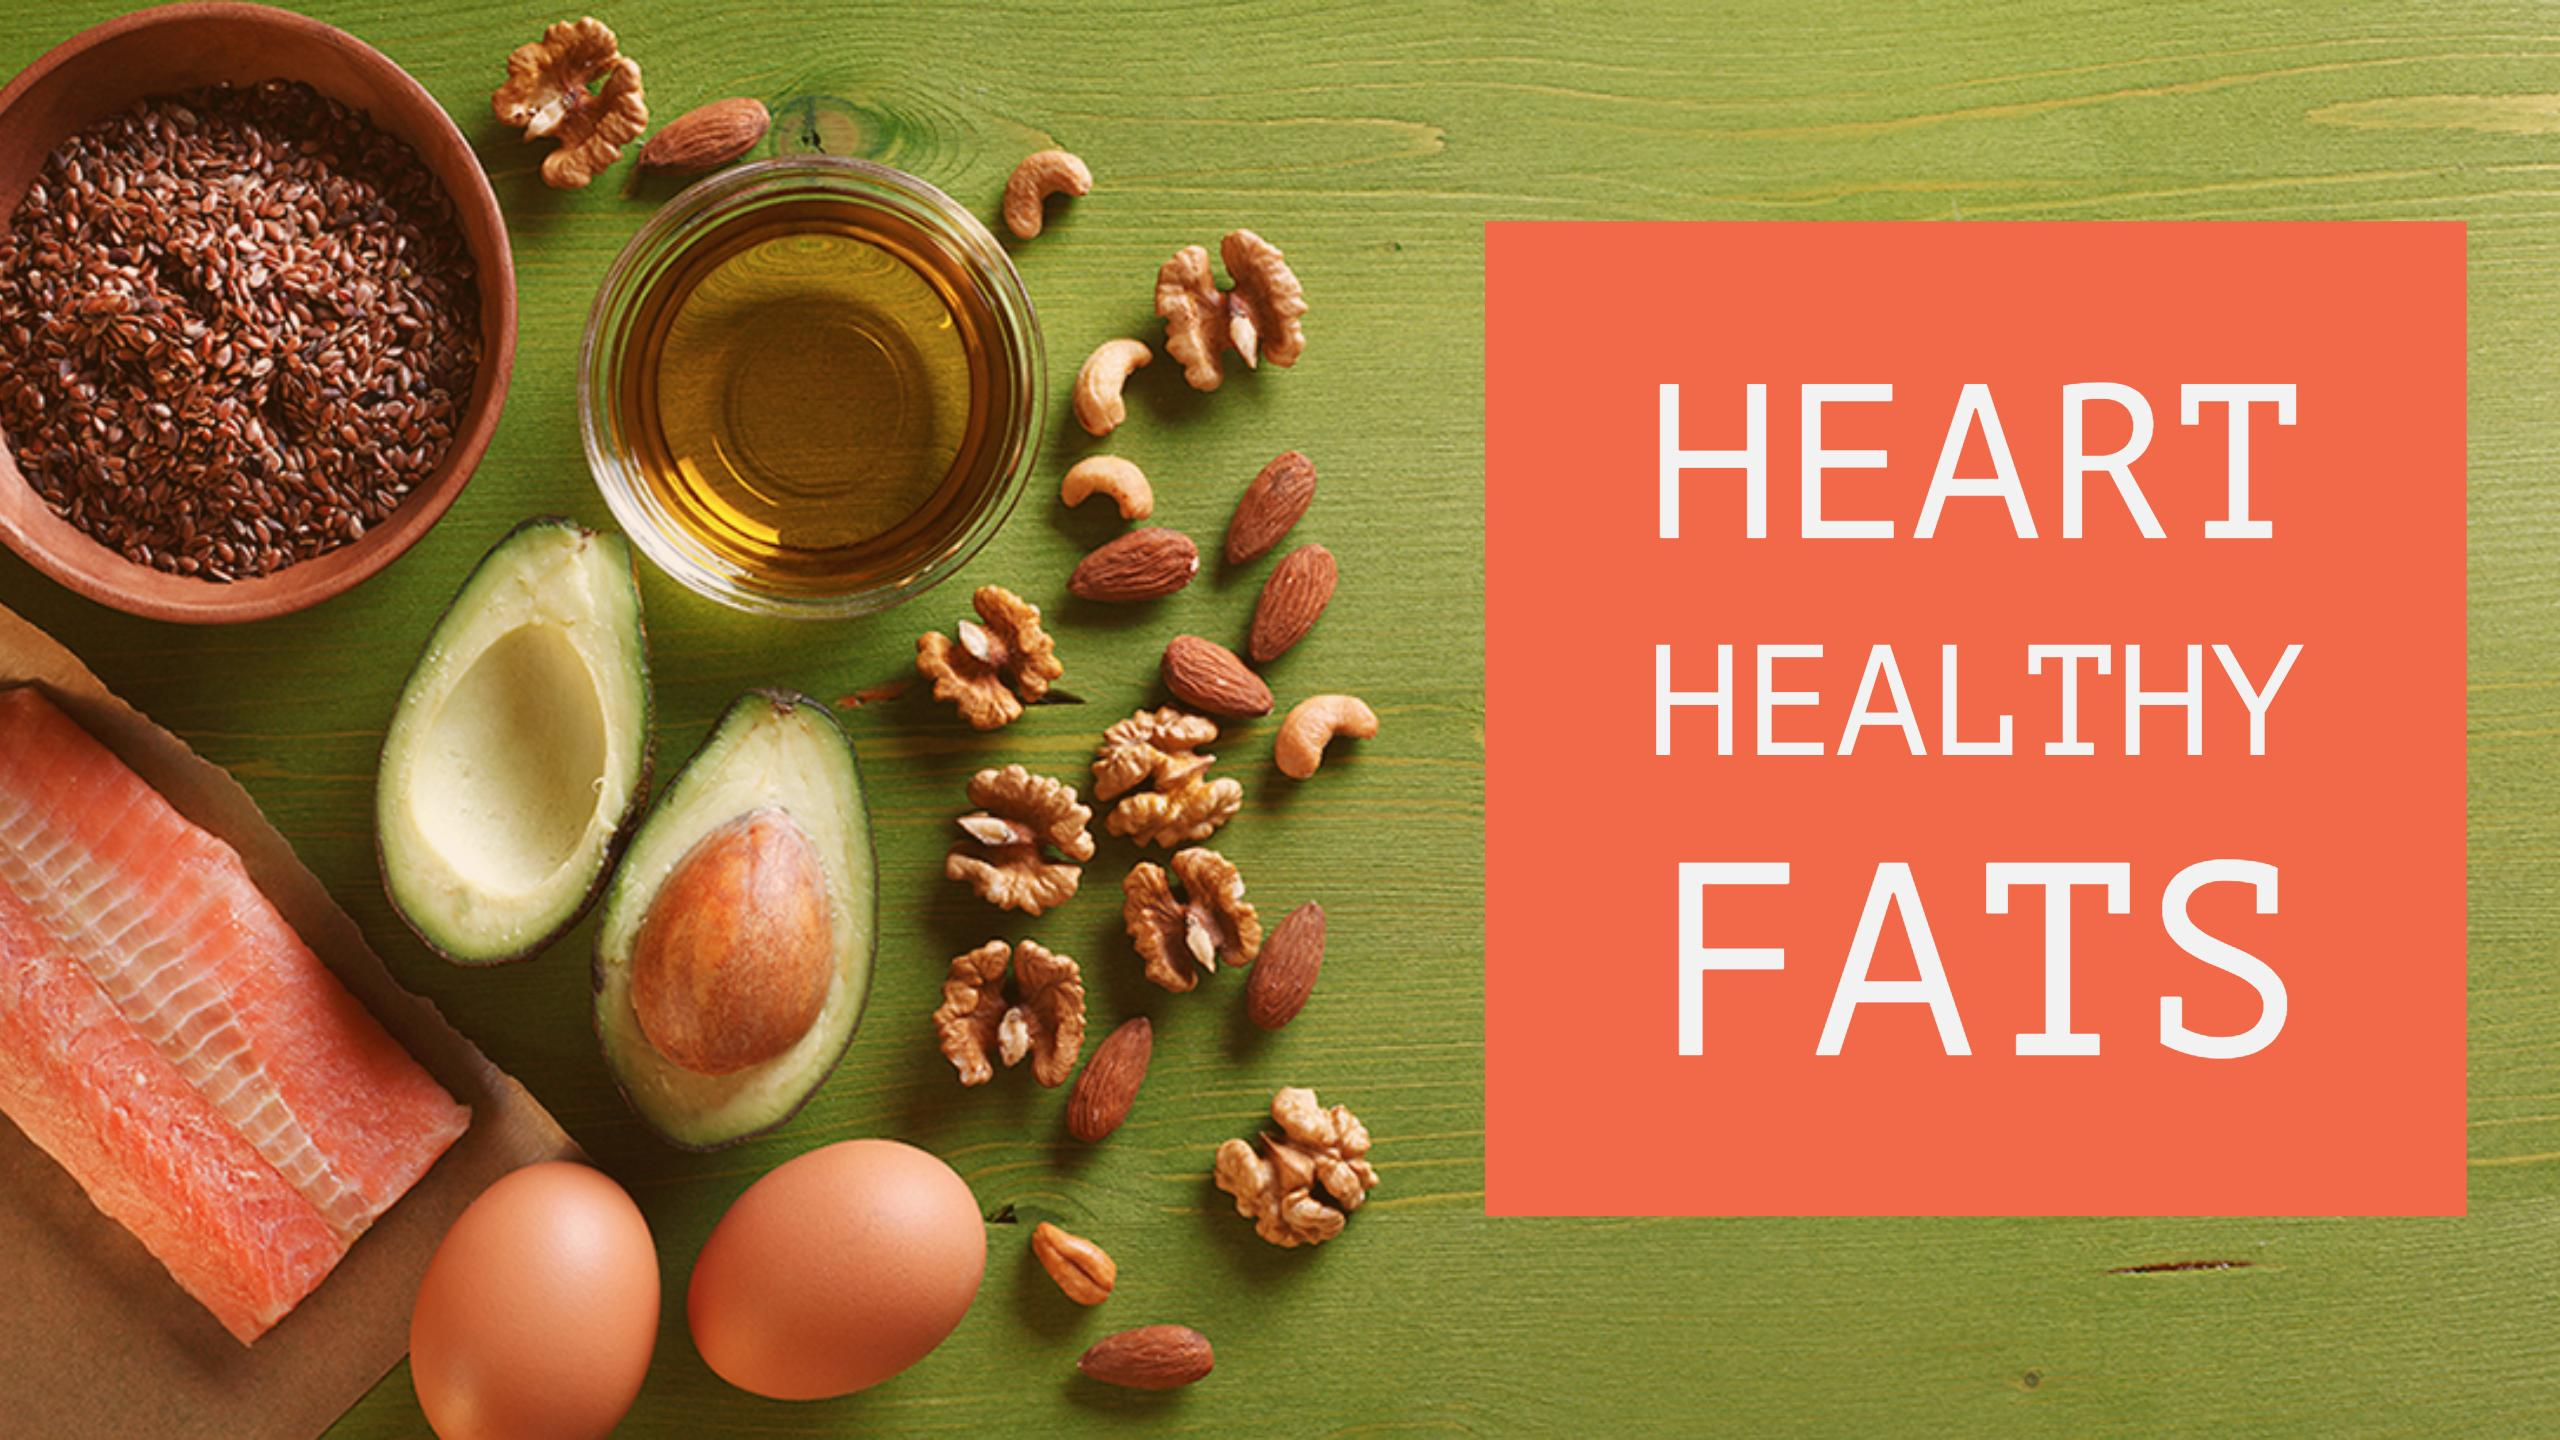 4 Heart-Healthy Fats to Add to Your Diet